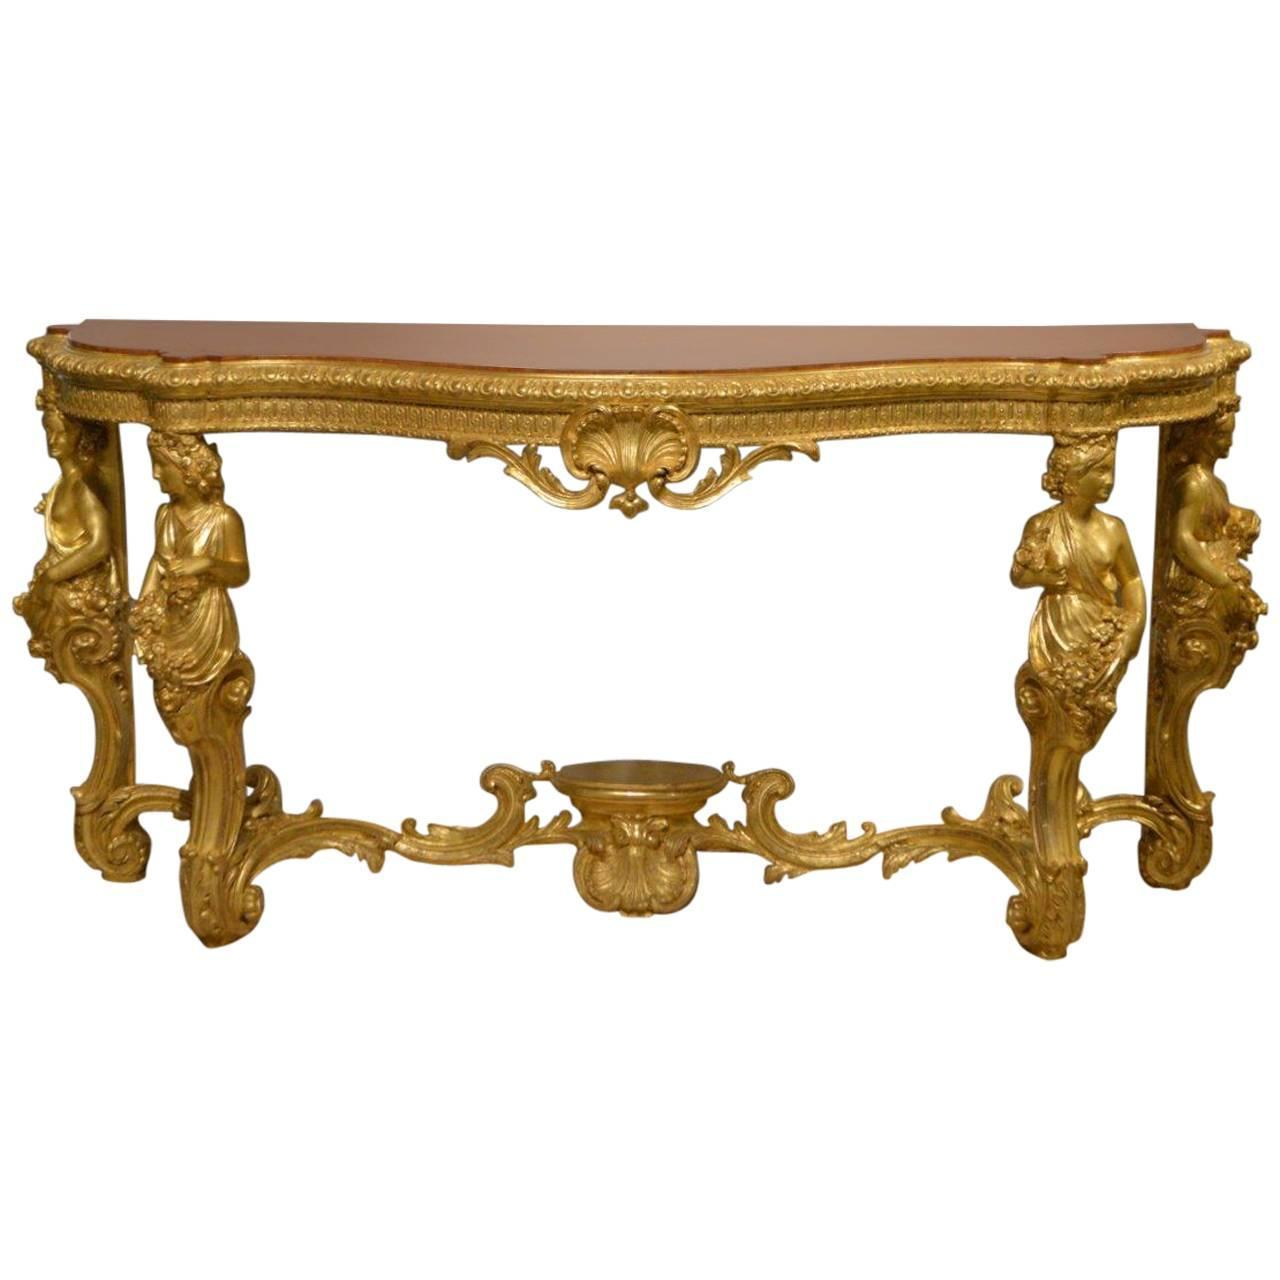 superb 19th century french baroque style gilt wood serpentine console table at 1stdibs. Black Bedroom Furniture Sets. Home Design Ideas